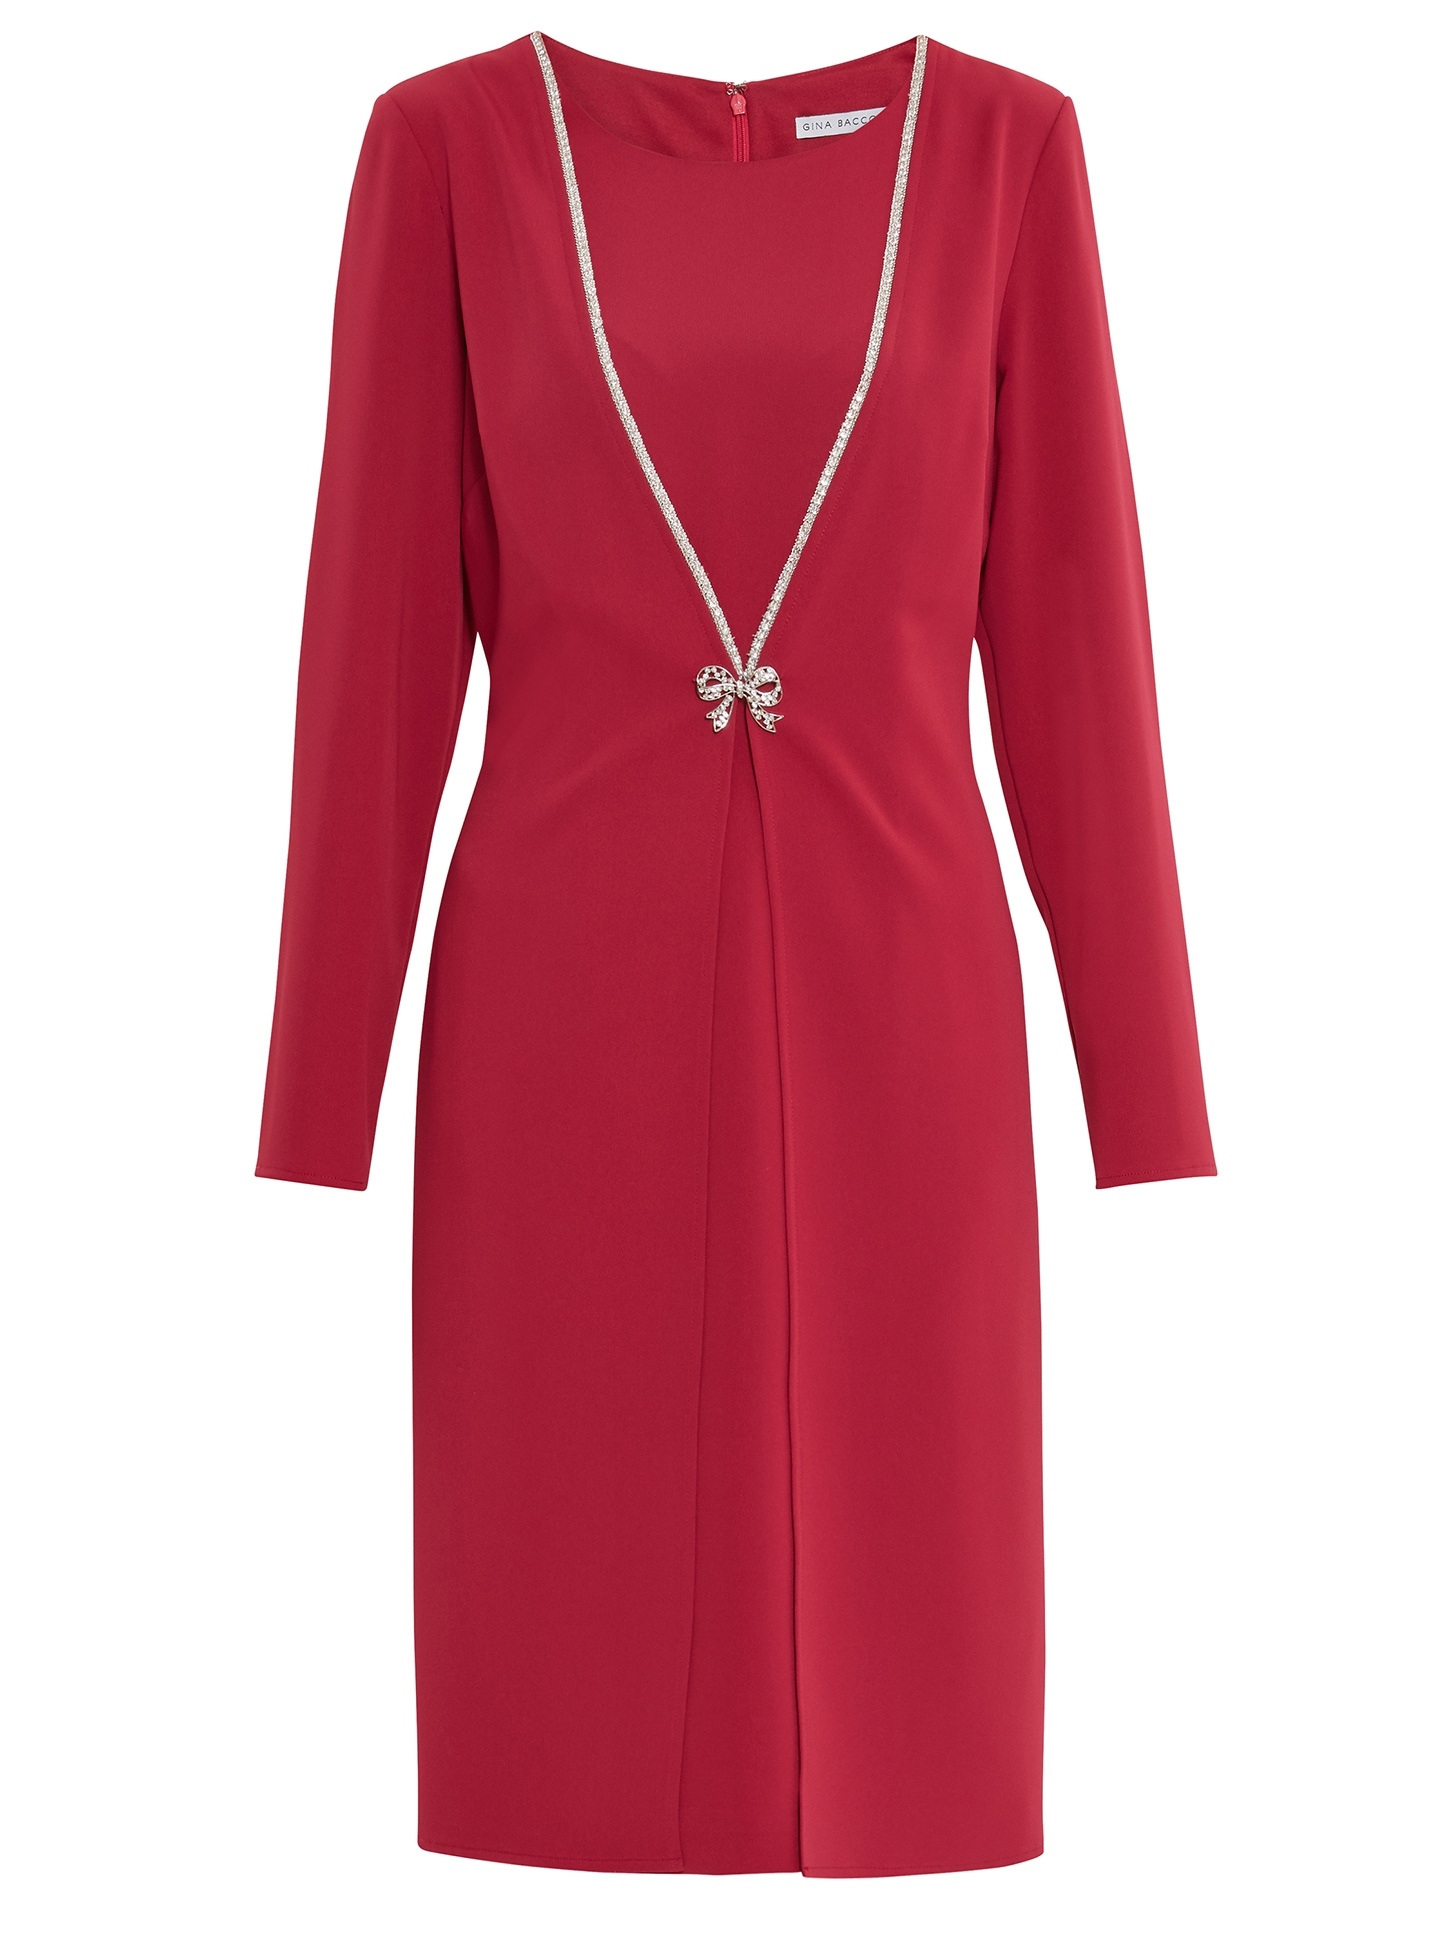 Sedona Coat Dress With Brooch